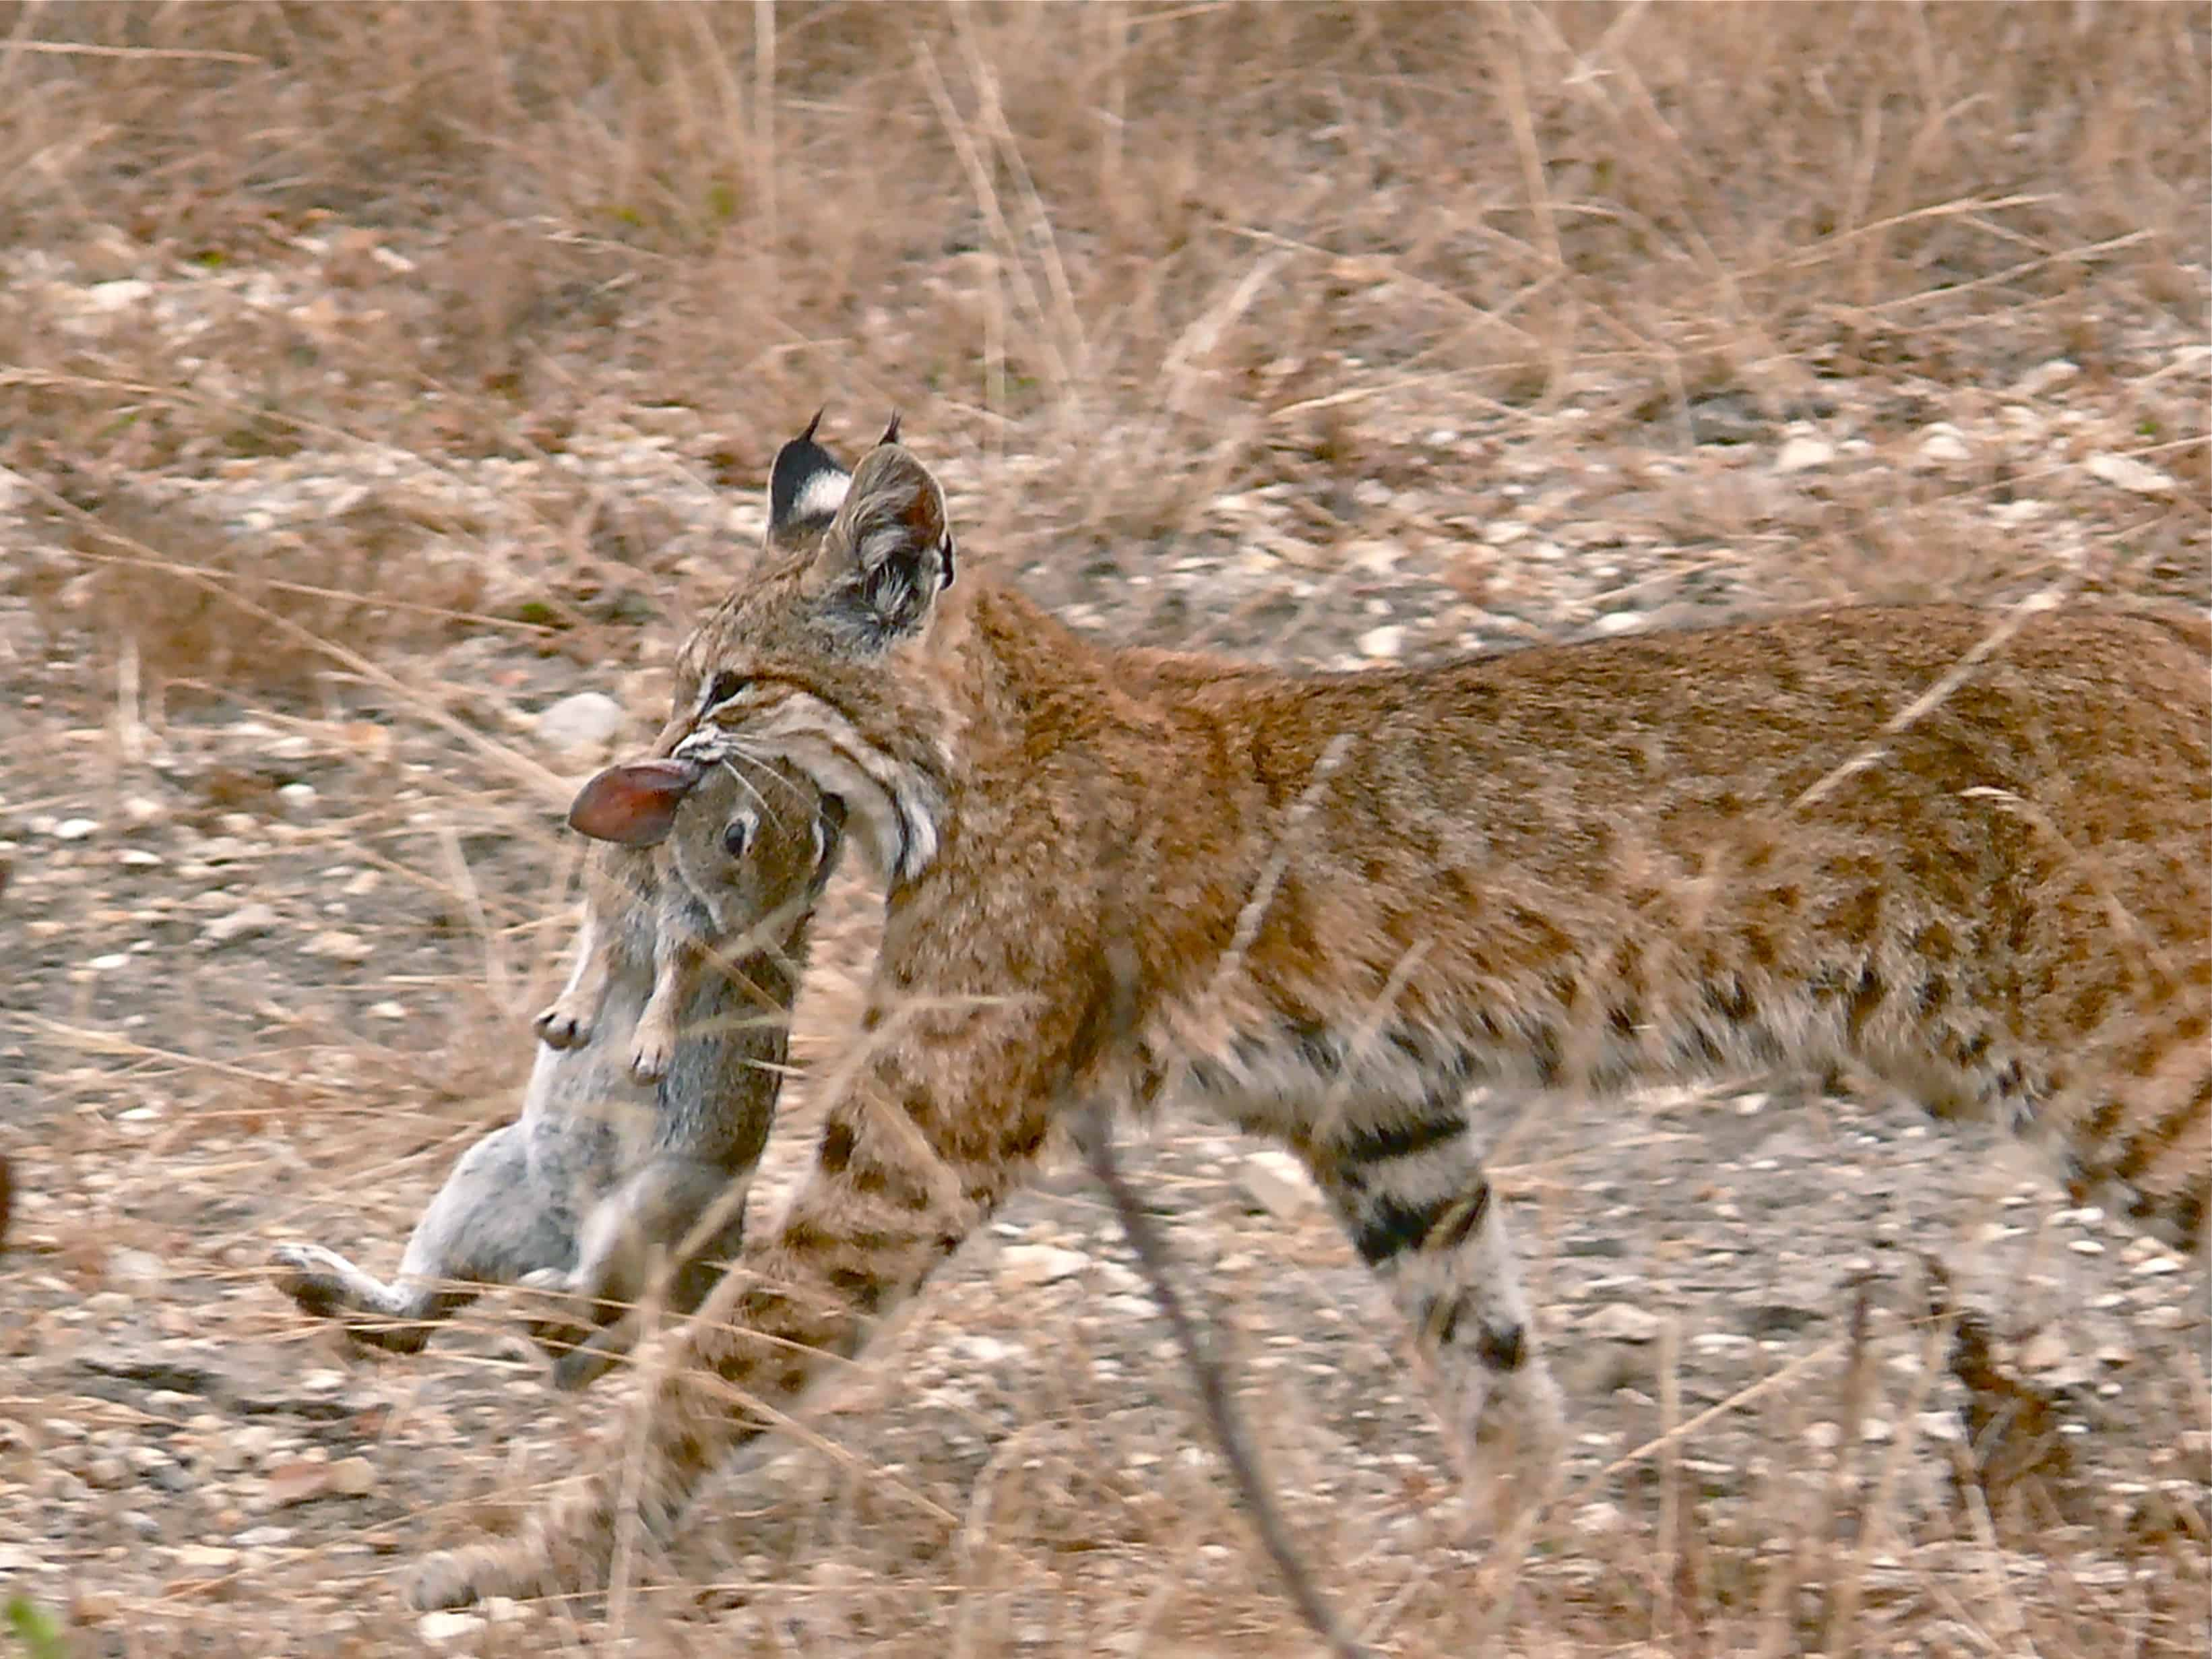 What does a Bobcat hunt?